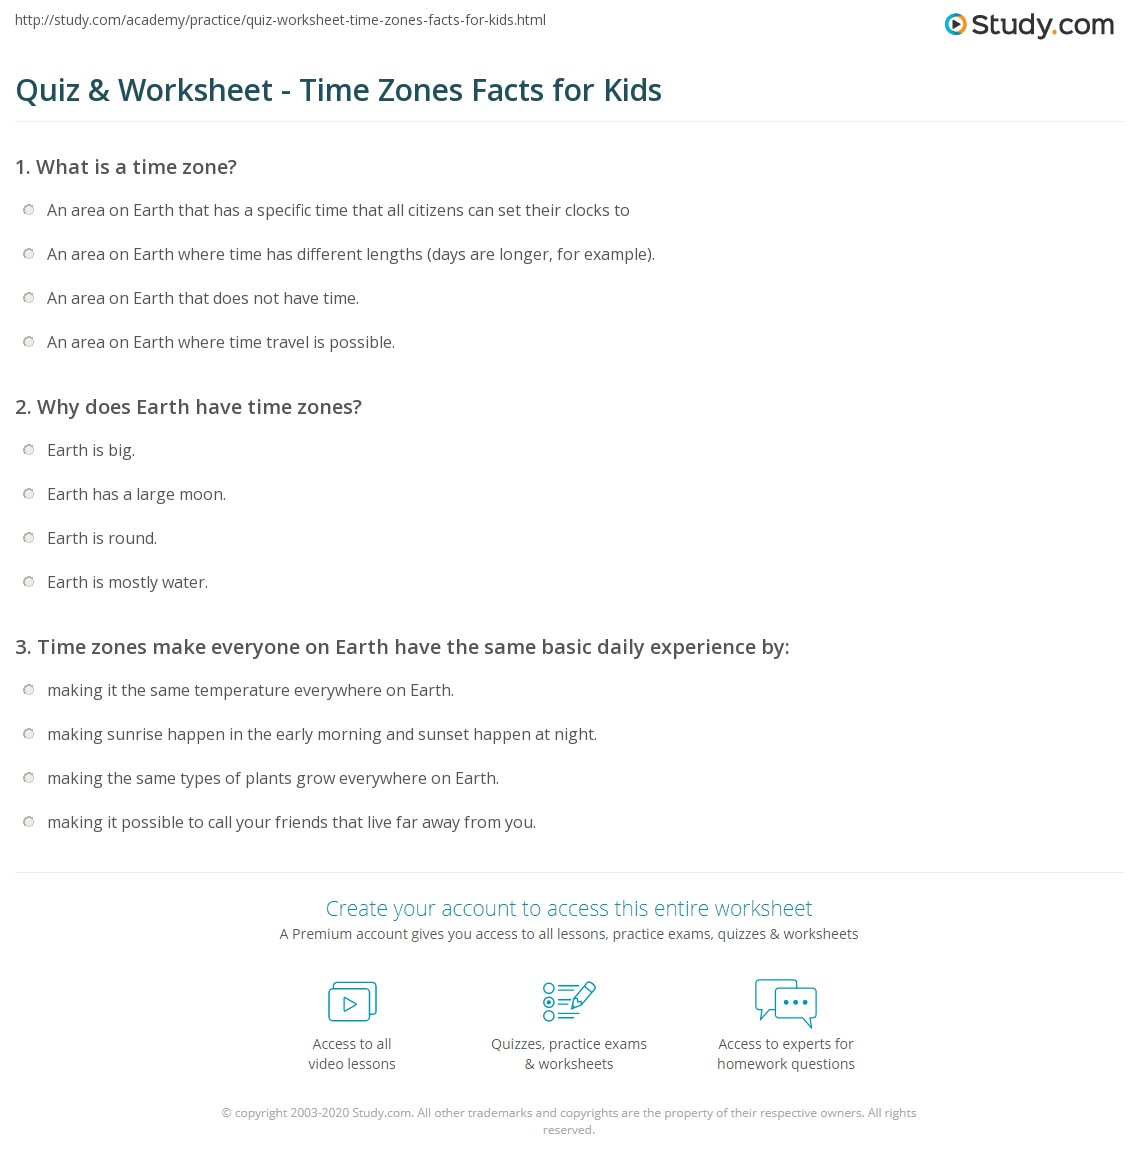 Quiz & Worksheet - Time Zones Facts for Kids | Study.com